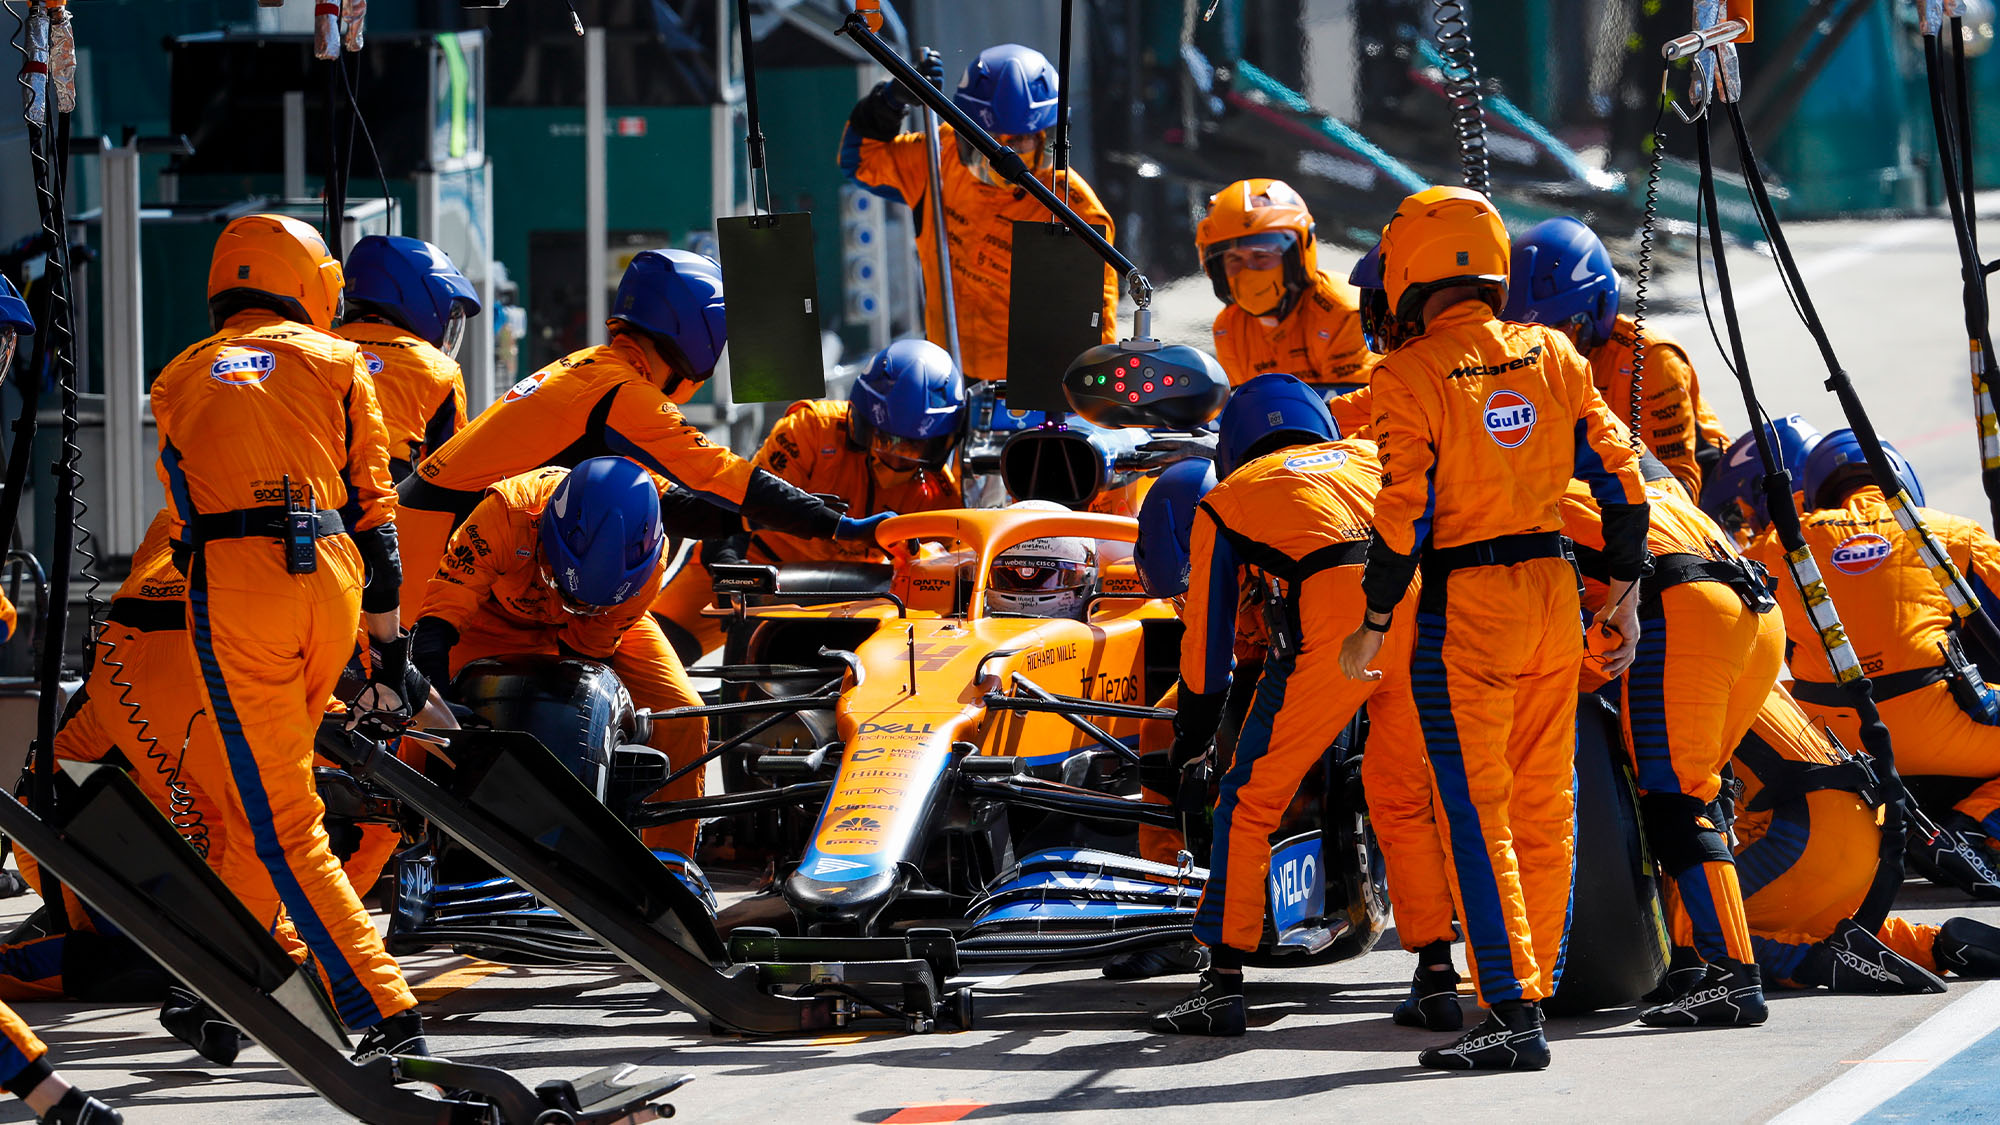 Slow stop for 04 NORRIS Lando (gbr), McLaren MCL35M, action during the Formula 1 Pirelli British Grand Prix 2021, 10th round of the 2021 FIA Formula One World Championship from July 16 to 18, 2021 on the Silverstone Circuit, in Silverstone, United Kingdom - Photo Antonin Vincent / DPPI